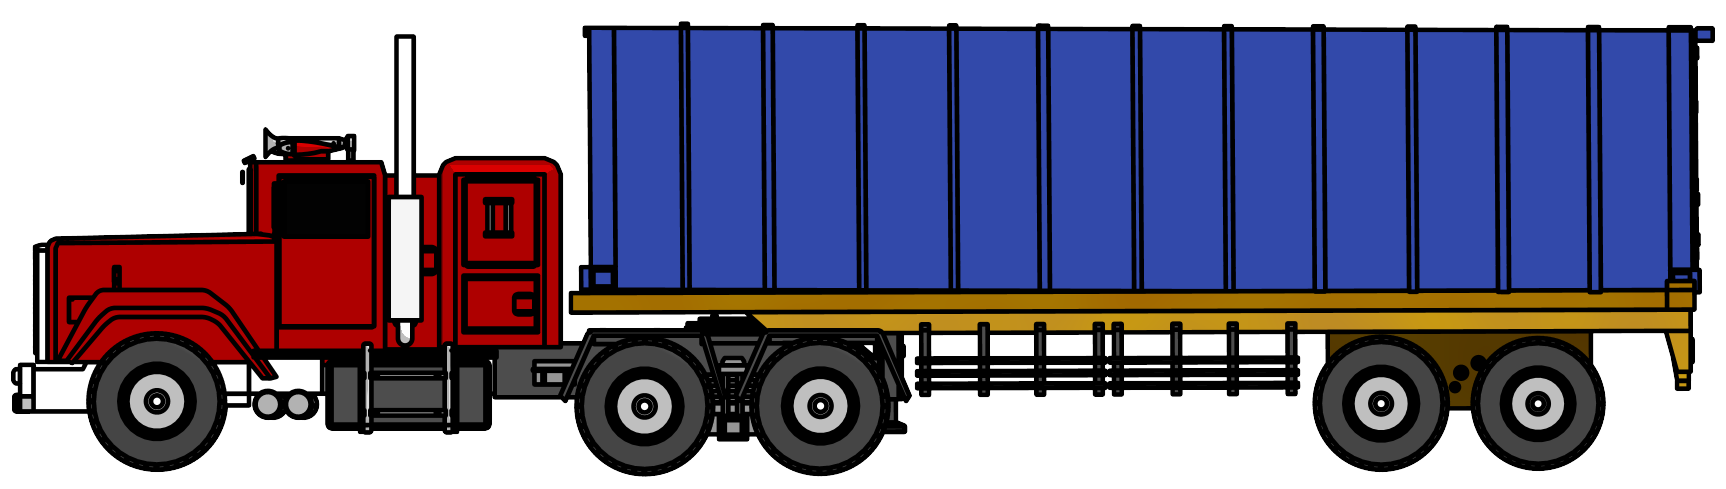 clip art freeuse stock Truck clipart. Industrial big png image